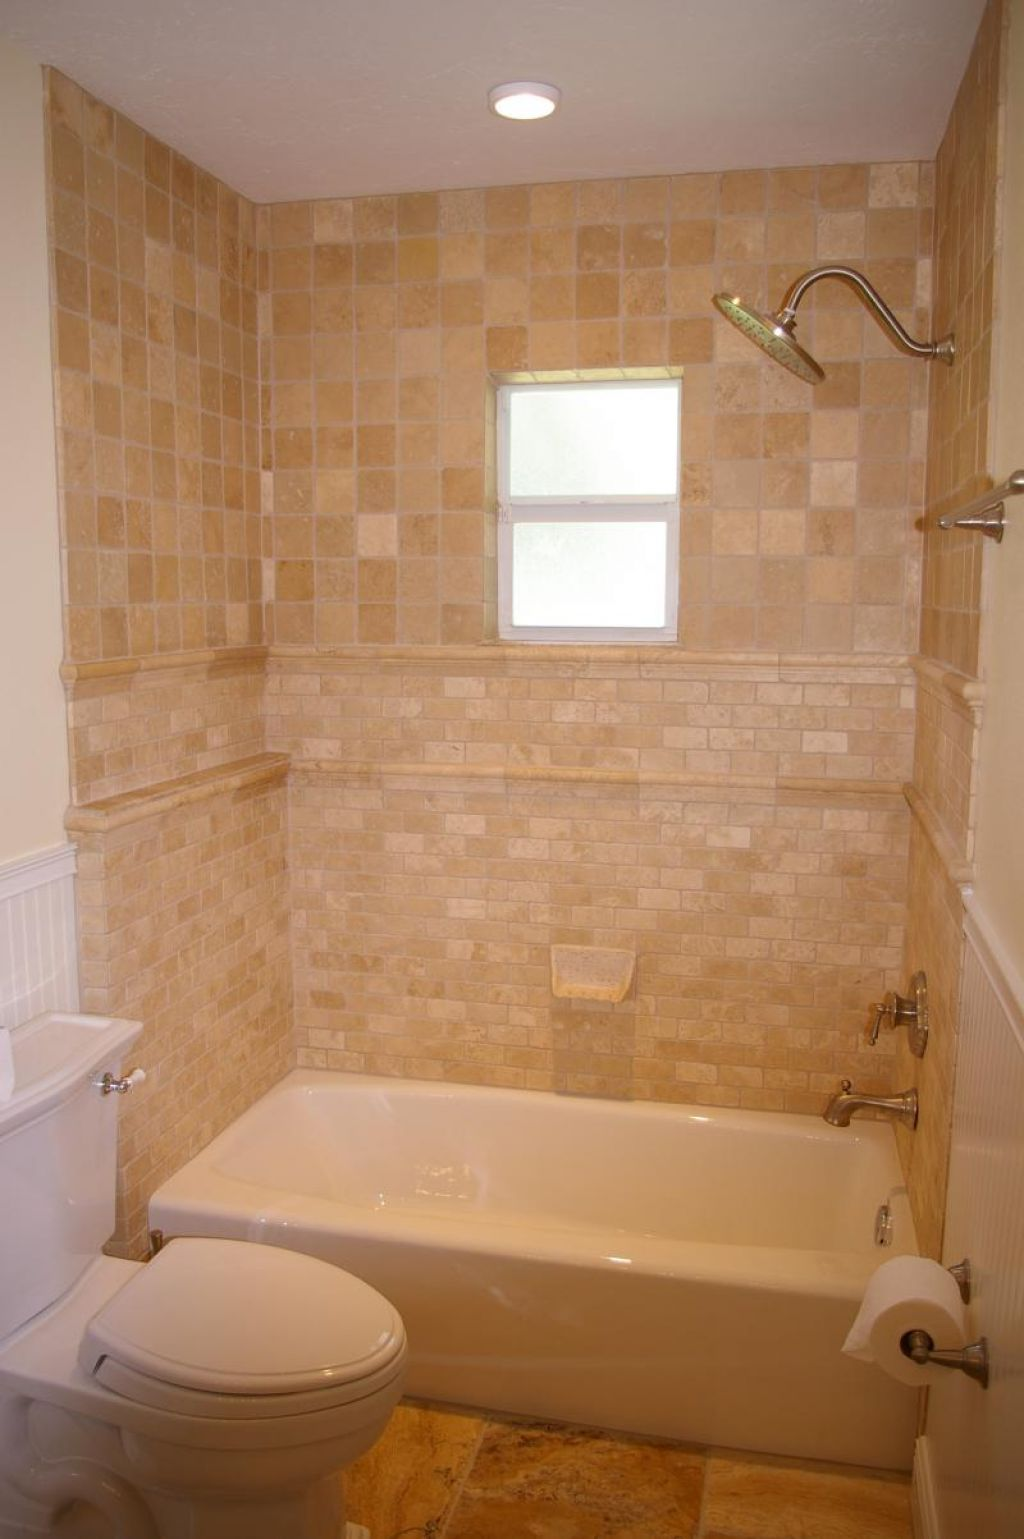 30 shower tile ideas on a budget for Bathroom ideas with tub